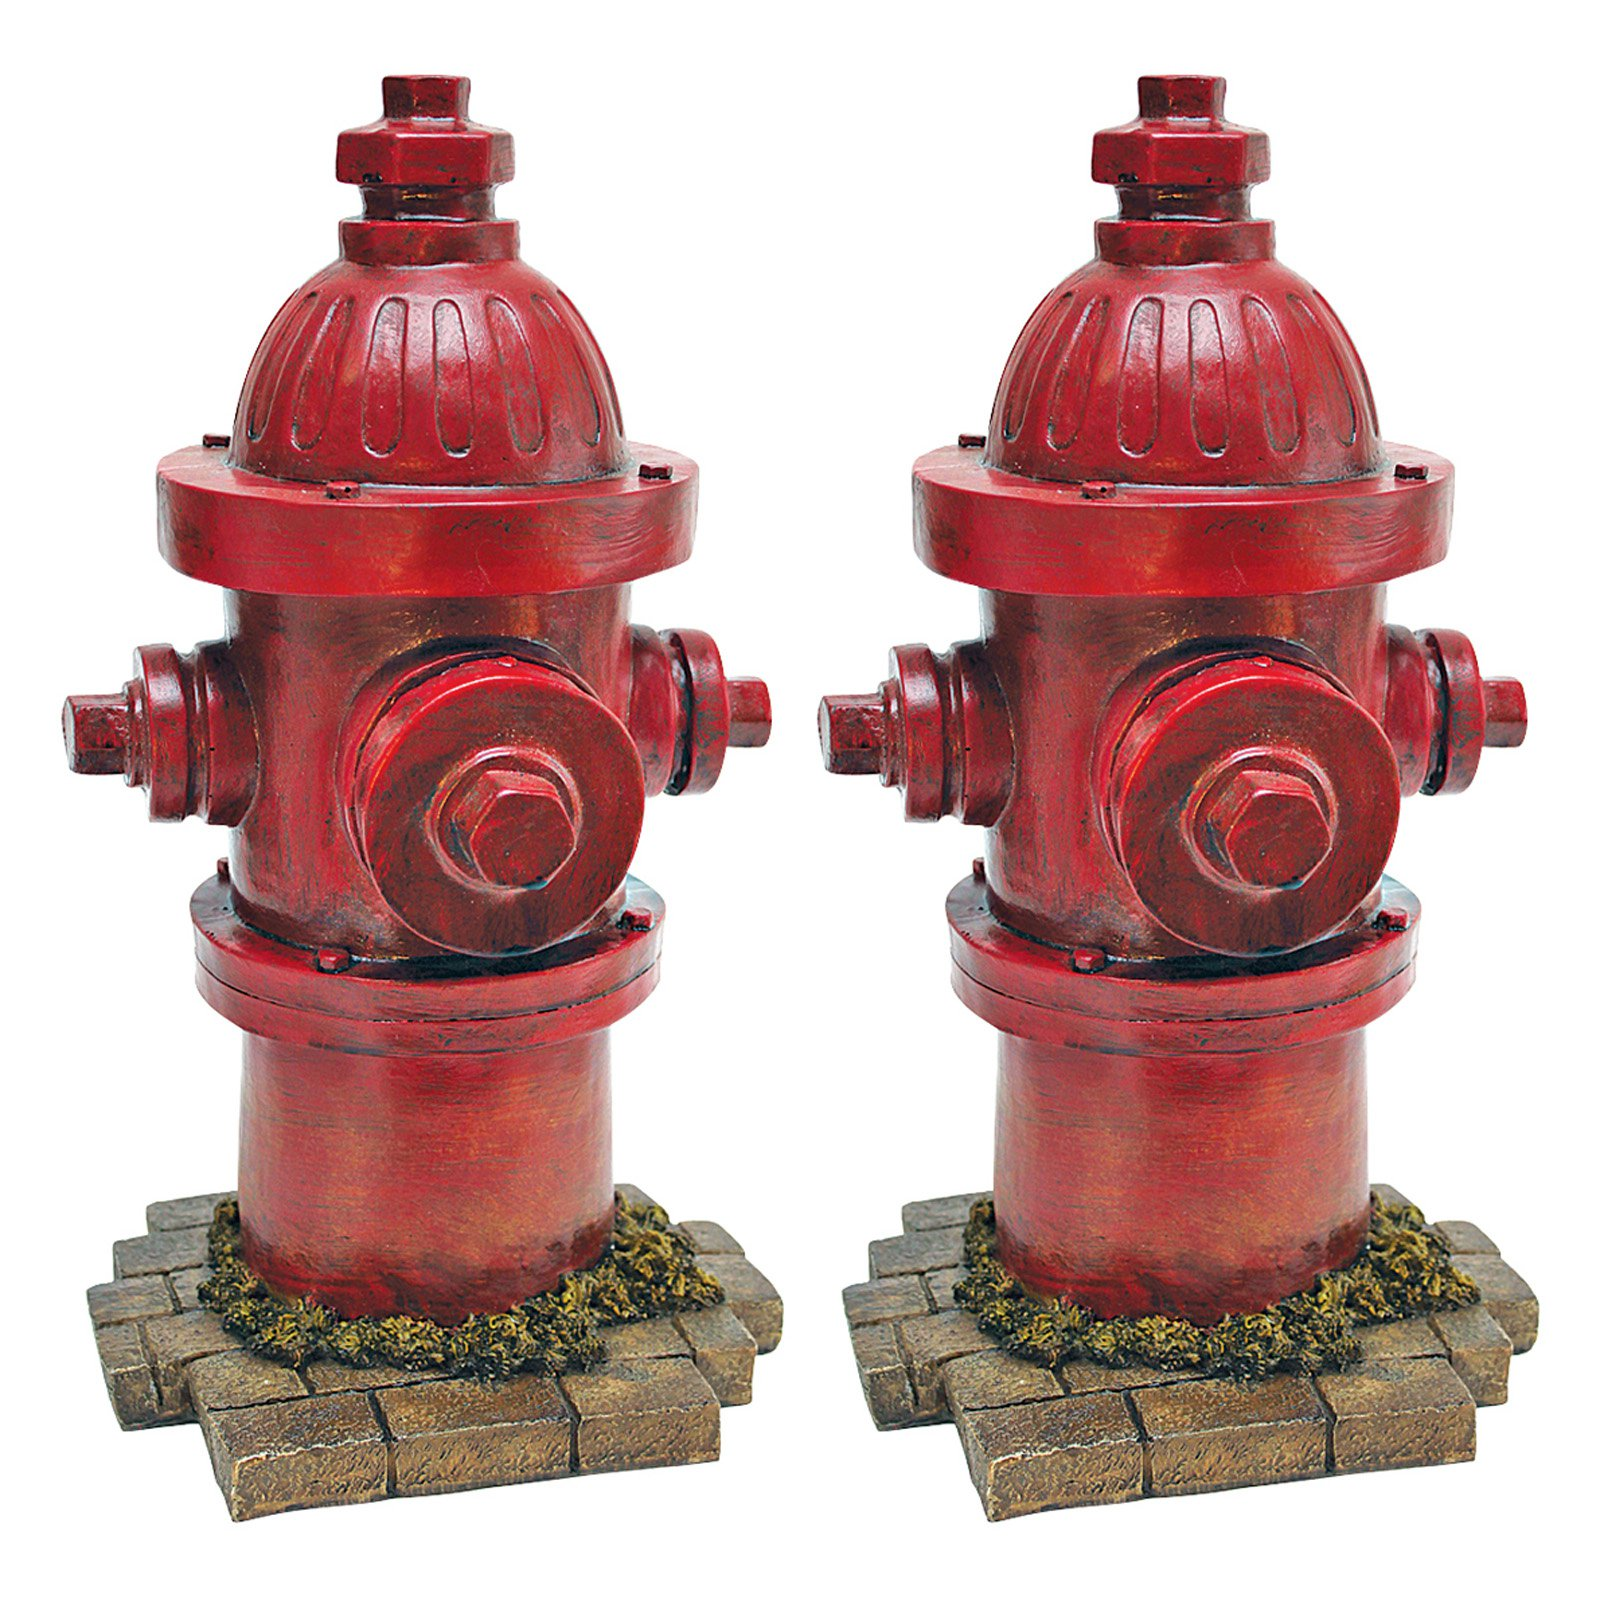 Design Toscano Dogs Second Best Friend Fire Hydrant Statue Set of 2 by Design Toscano